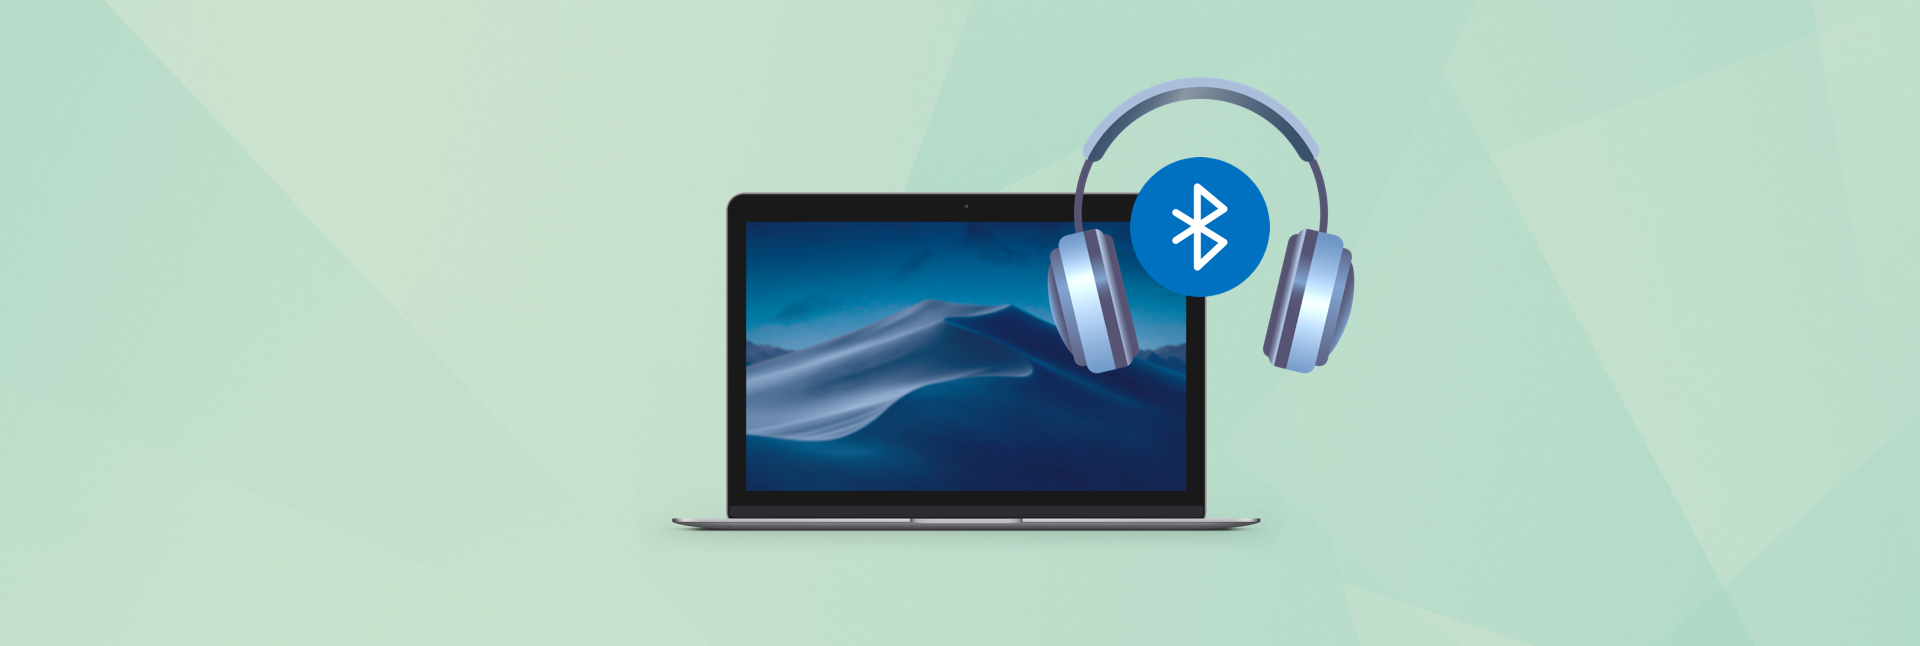 66b1d12a35e3 How to connect bluetooth headphones to Mac